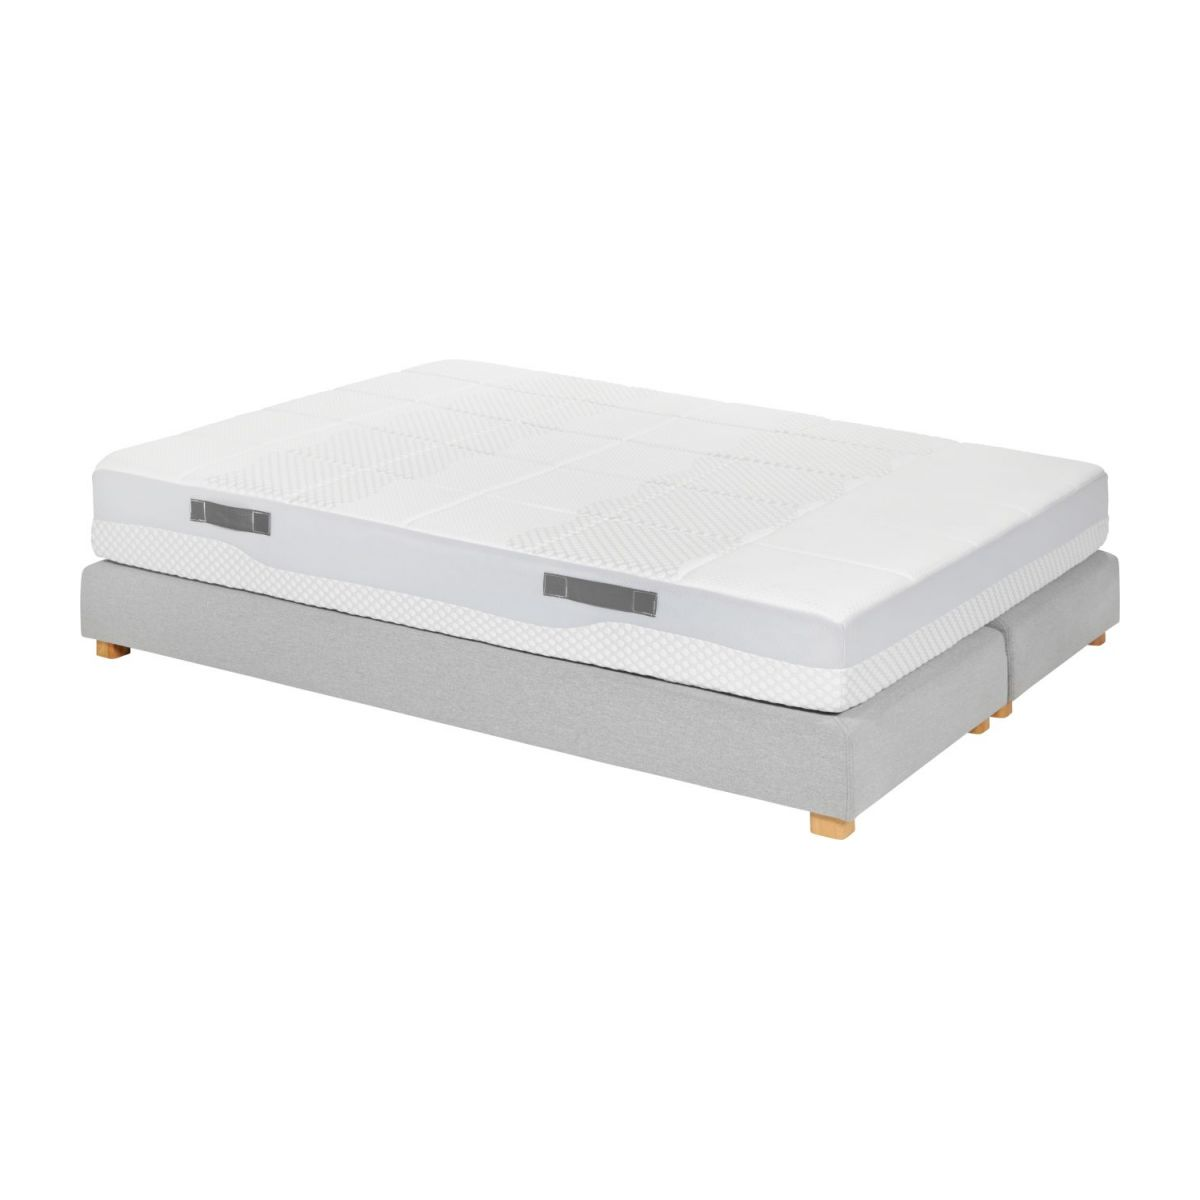 Foam mattress, width 24 cm, 160x200cm - medium support n°5